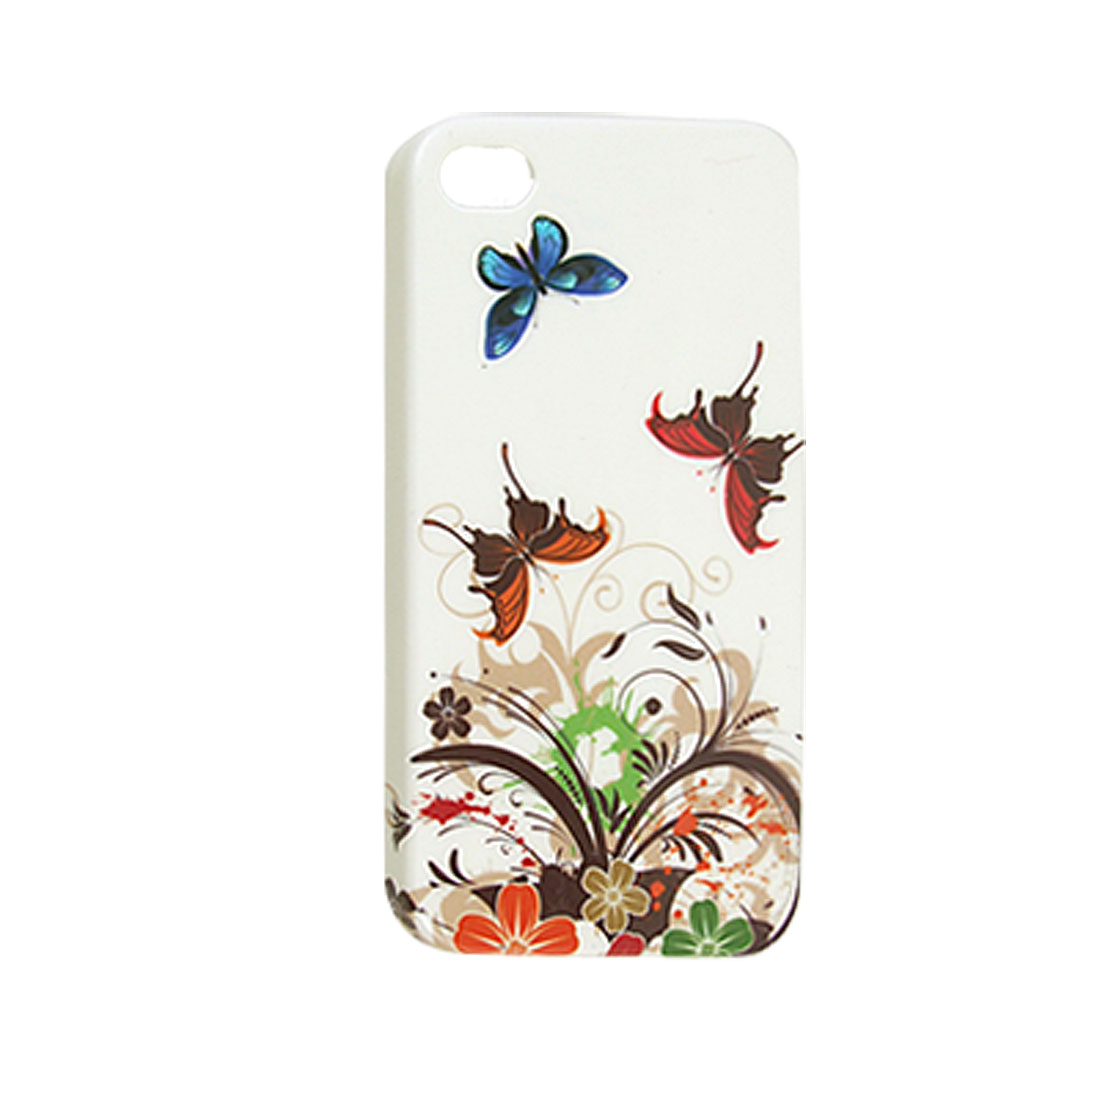 Butterfly Flower Hard Plastic IMD Back Cover for iPhone 4 4G